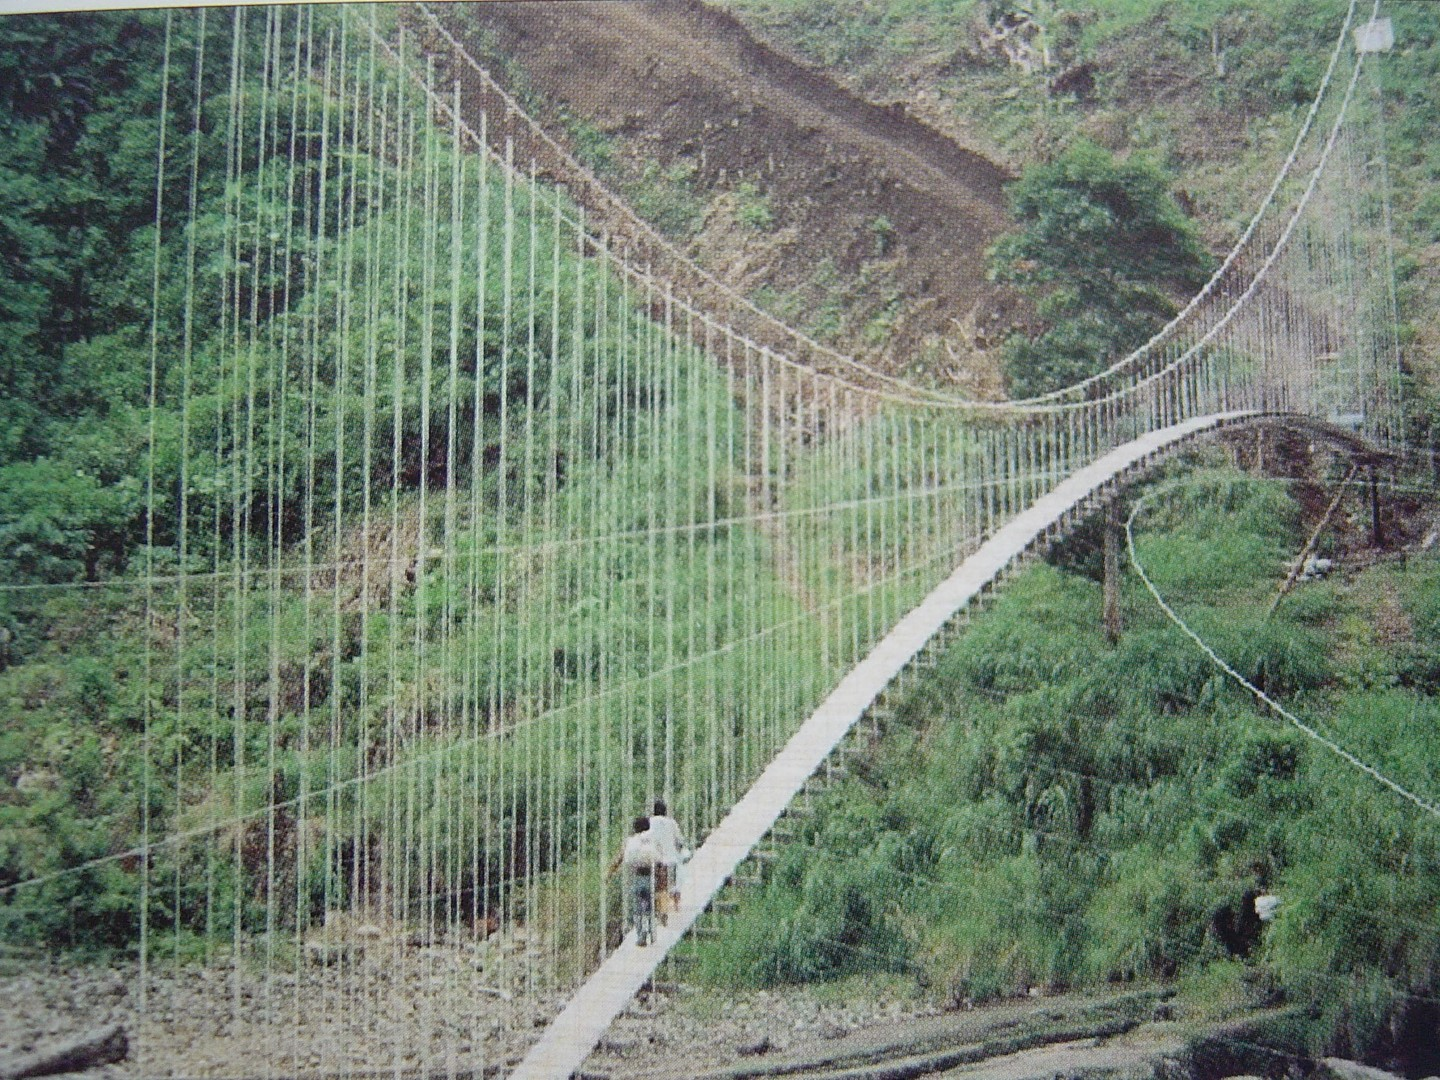 264m suspension bridge over the Rio Aguarico, Ecuador (c) Toni Ruttimann Bridgebuilders